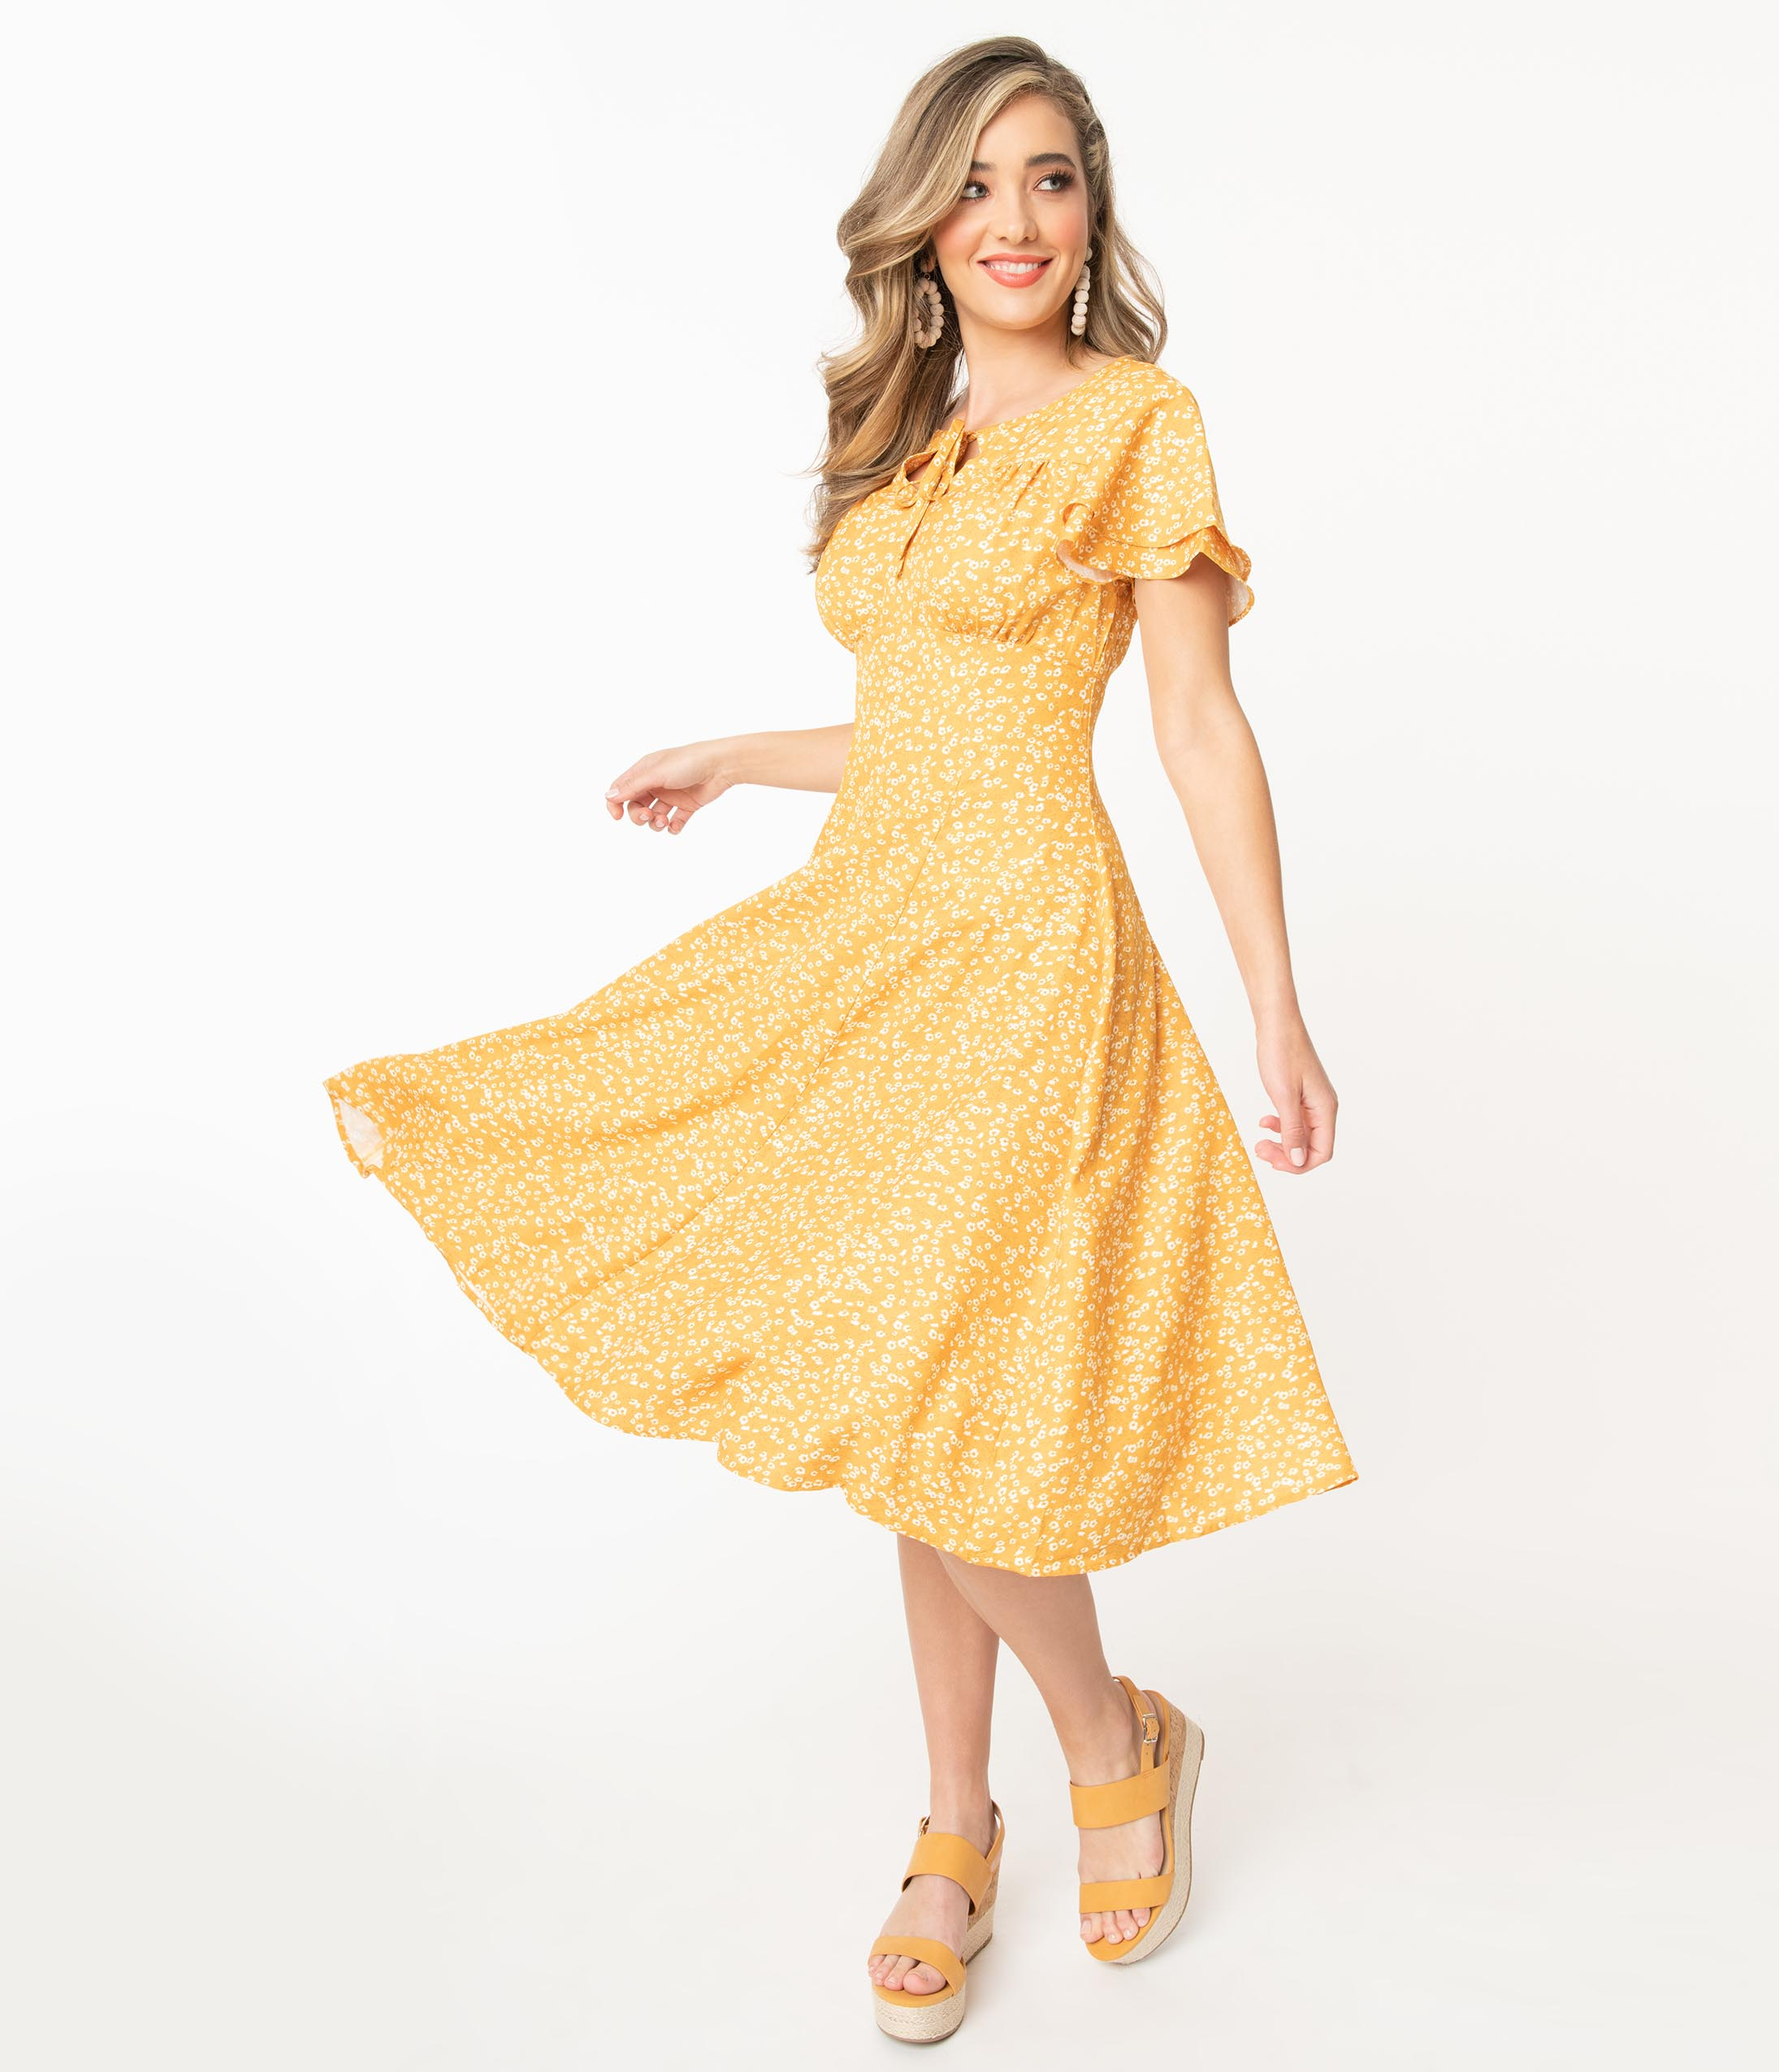 1950s Plus Size Dresses, Swing Dresses 1950S Mustard  Ivory Ditsy Floral Print Sanj Swing Dress $78.00 AT vintagedancer.com